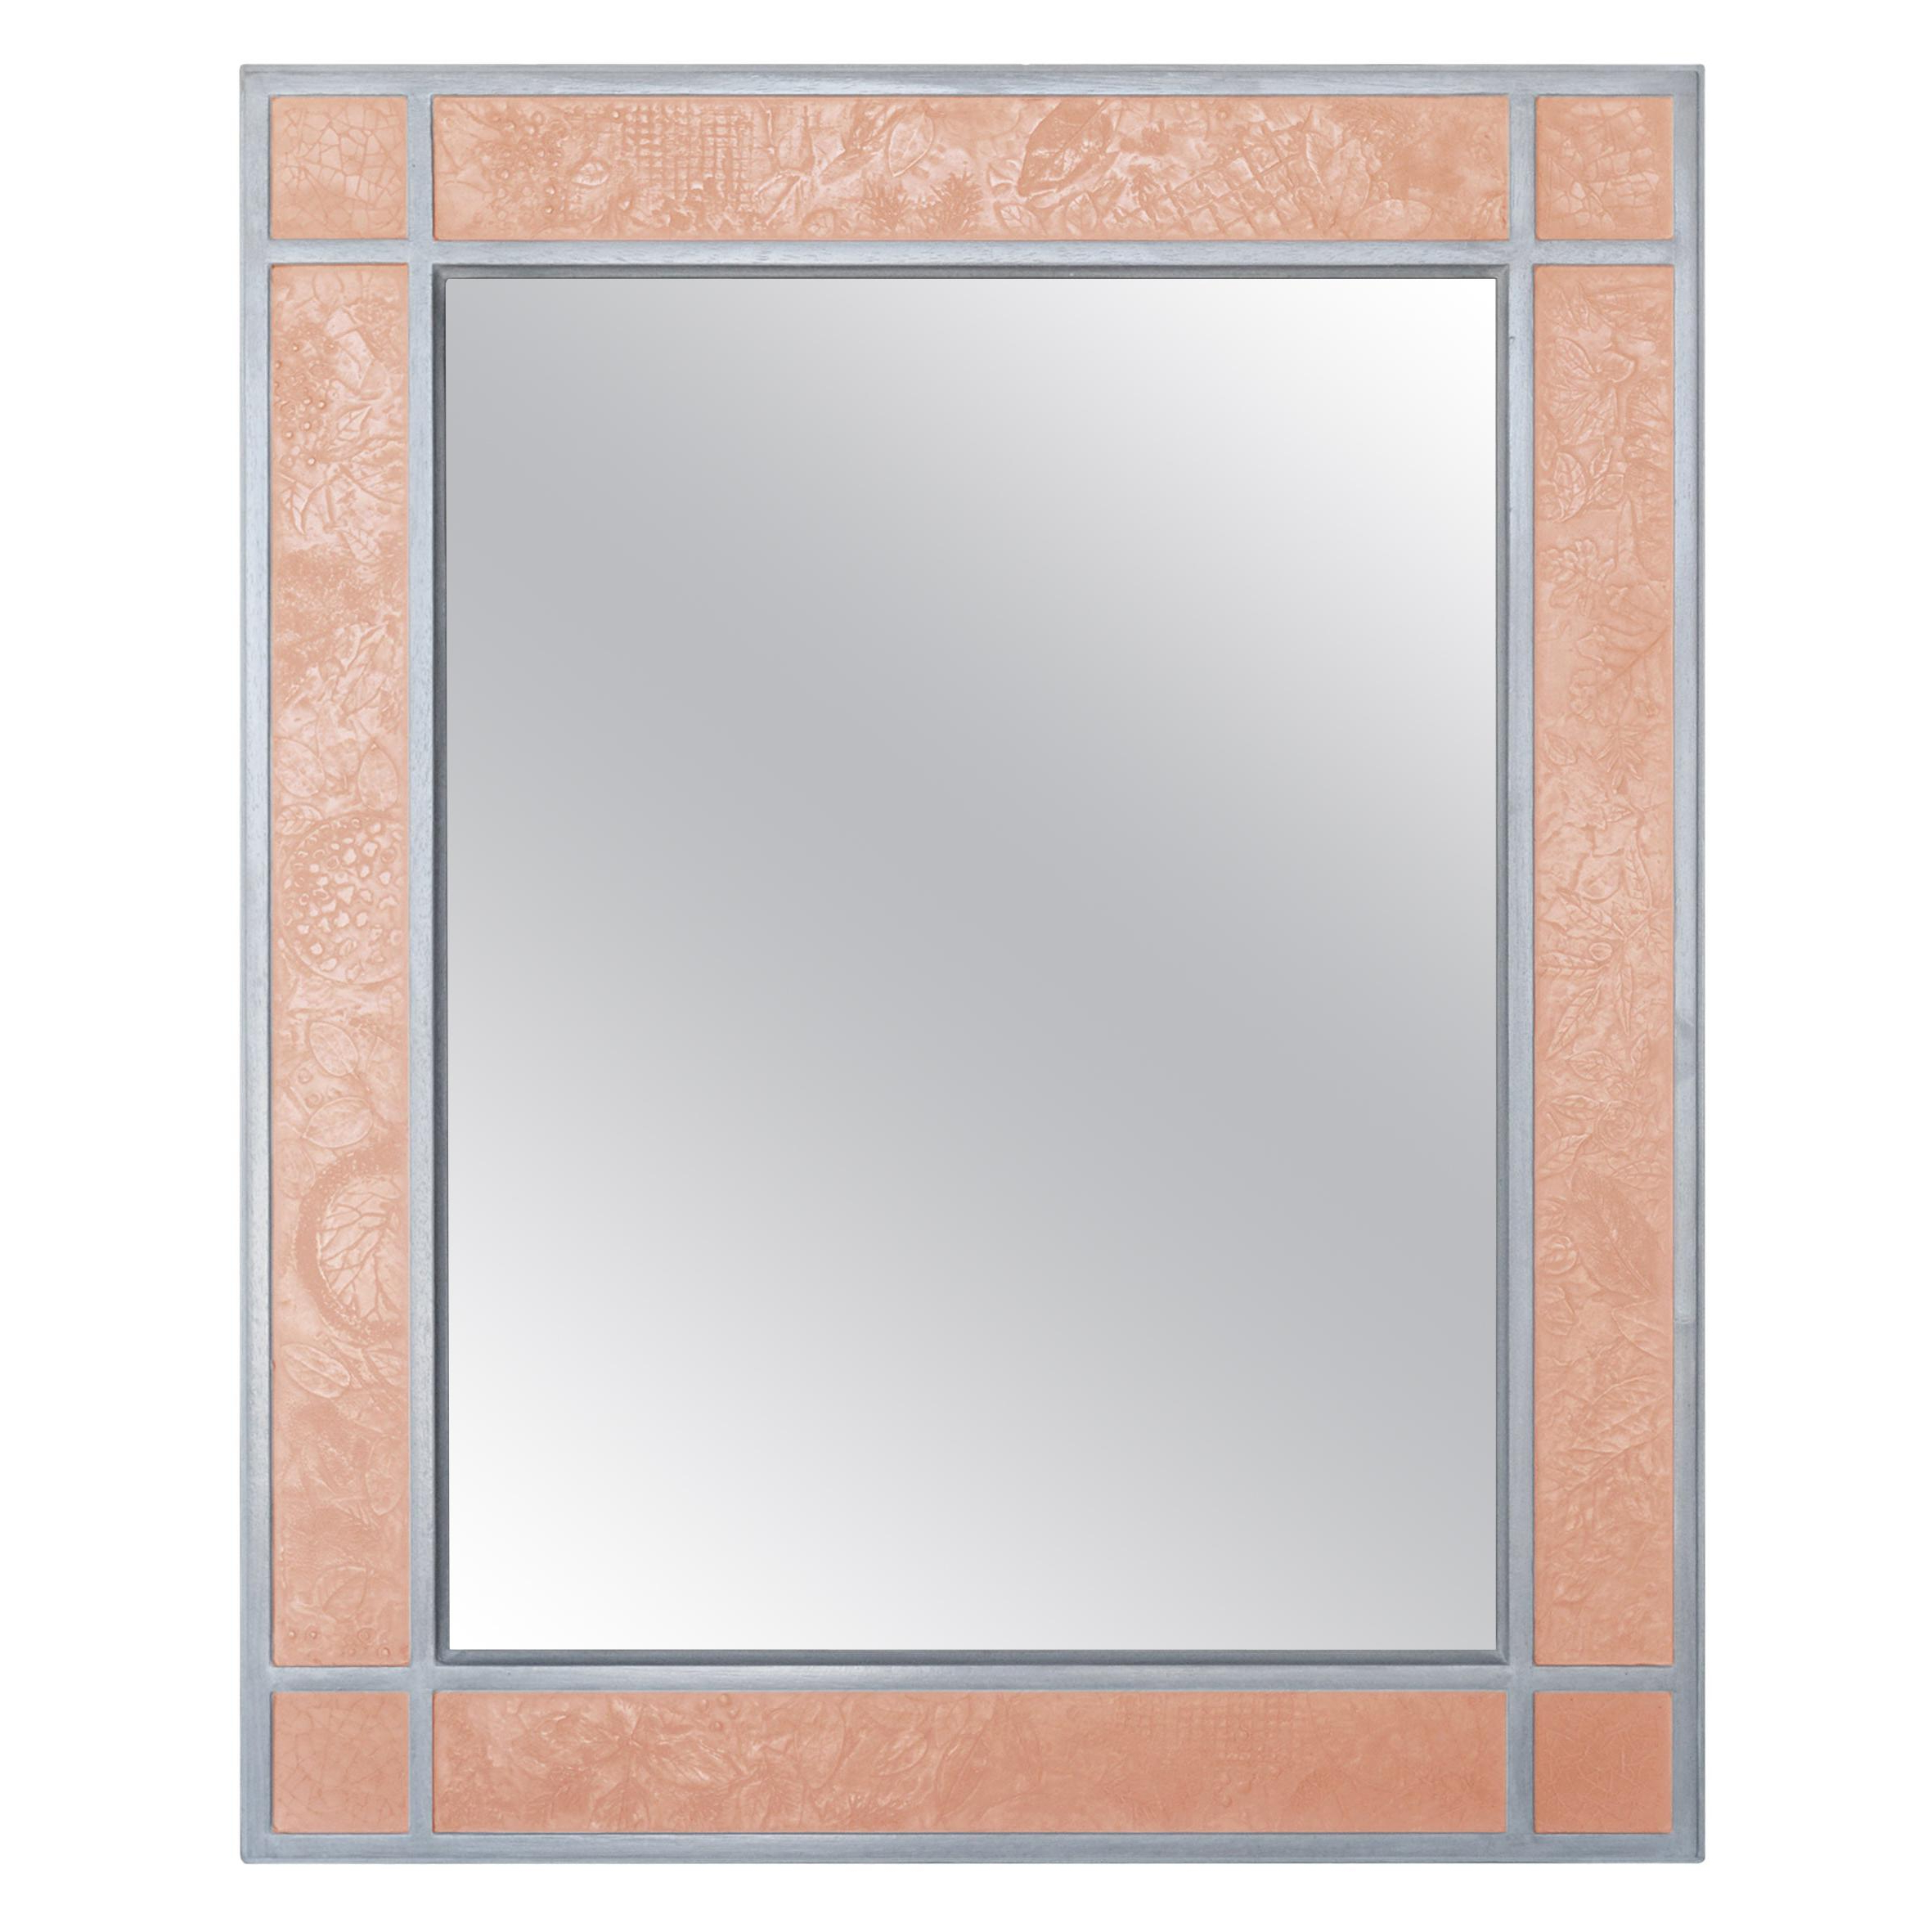 2019 Orange Wall Mirrors Intended For Wall Mirror Artistic Grey Moonstone Ecological Shagreen Decoration Frame (View 14 of 20)